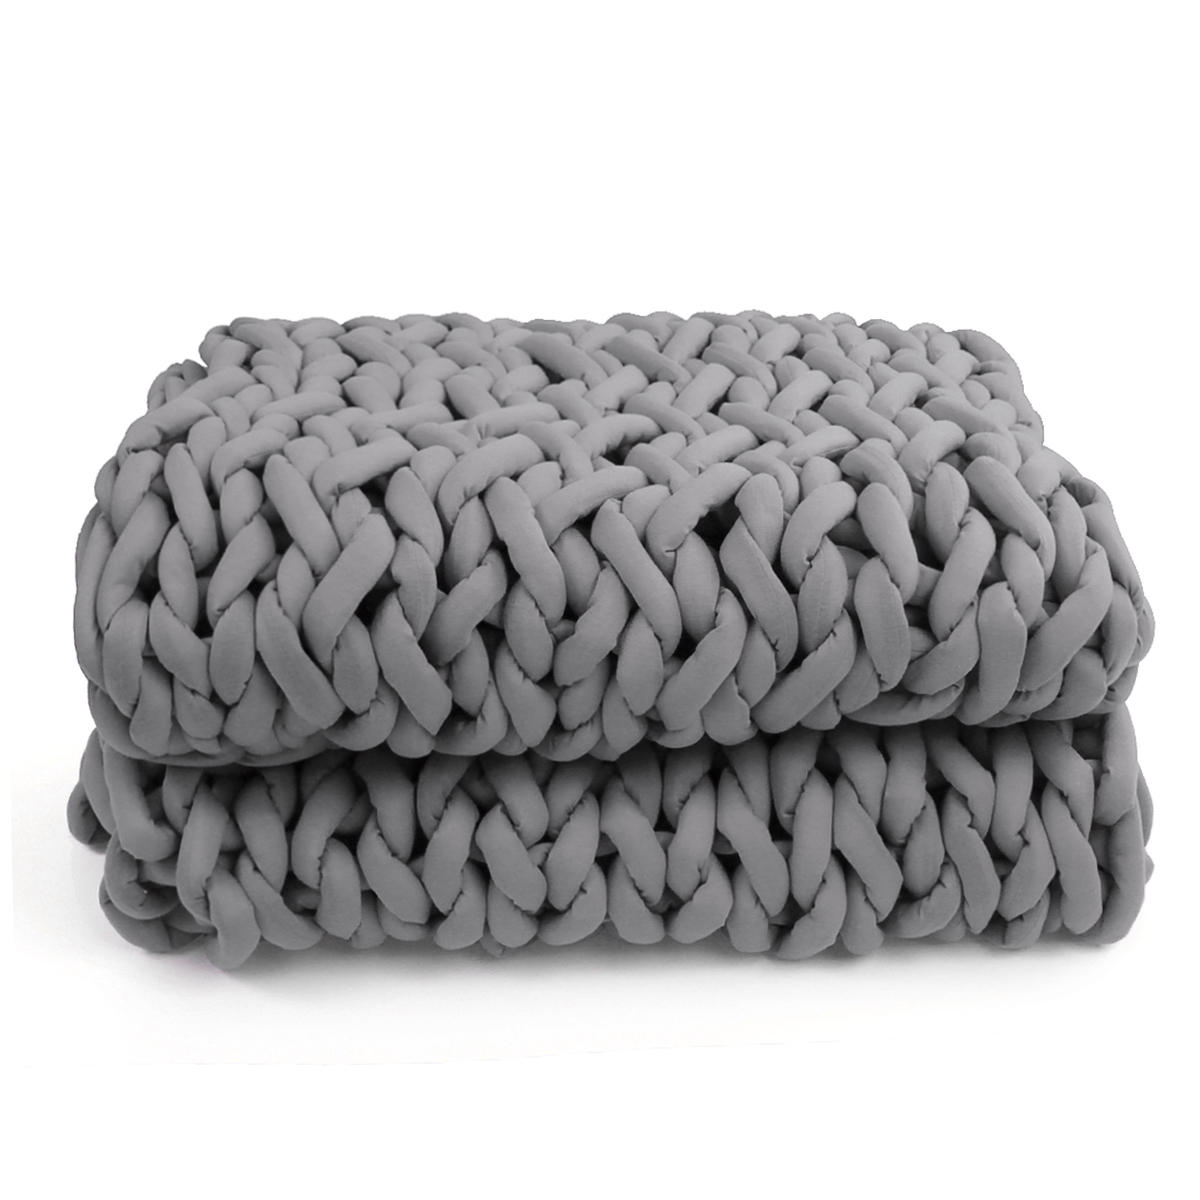 120x150cm Handmade Knitted Blanket Soft Warm Thick Line Cotton Throw Blankets - 10